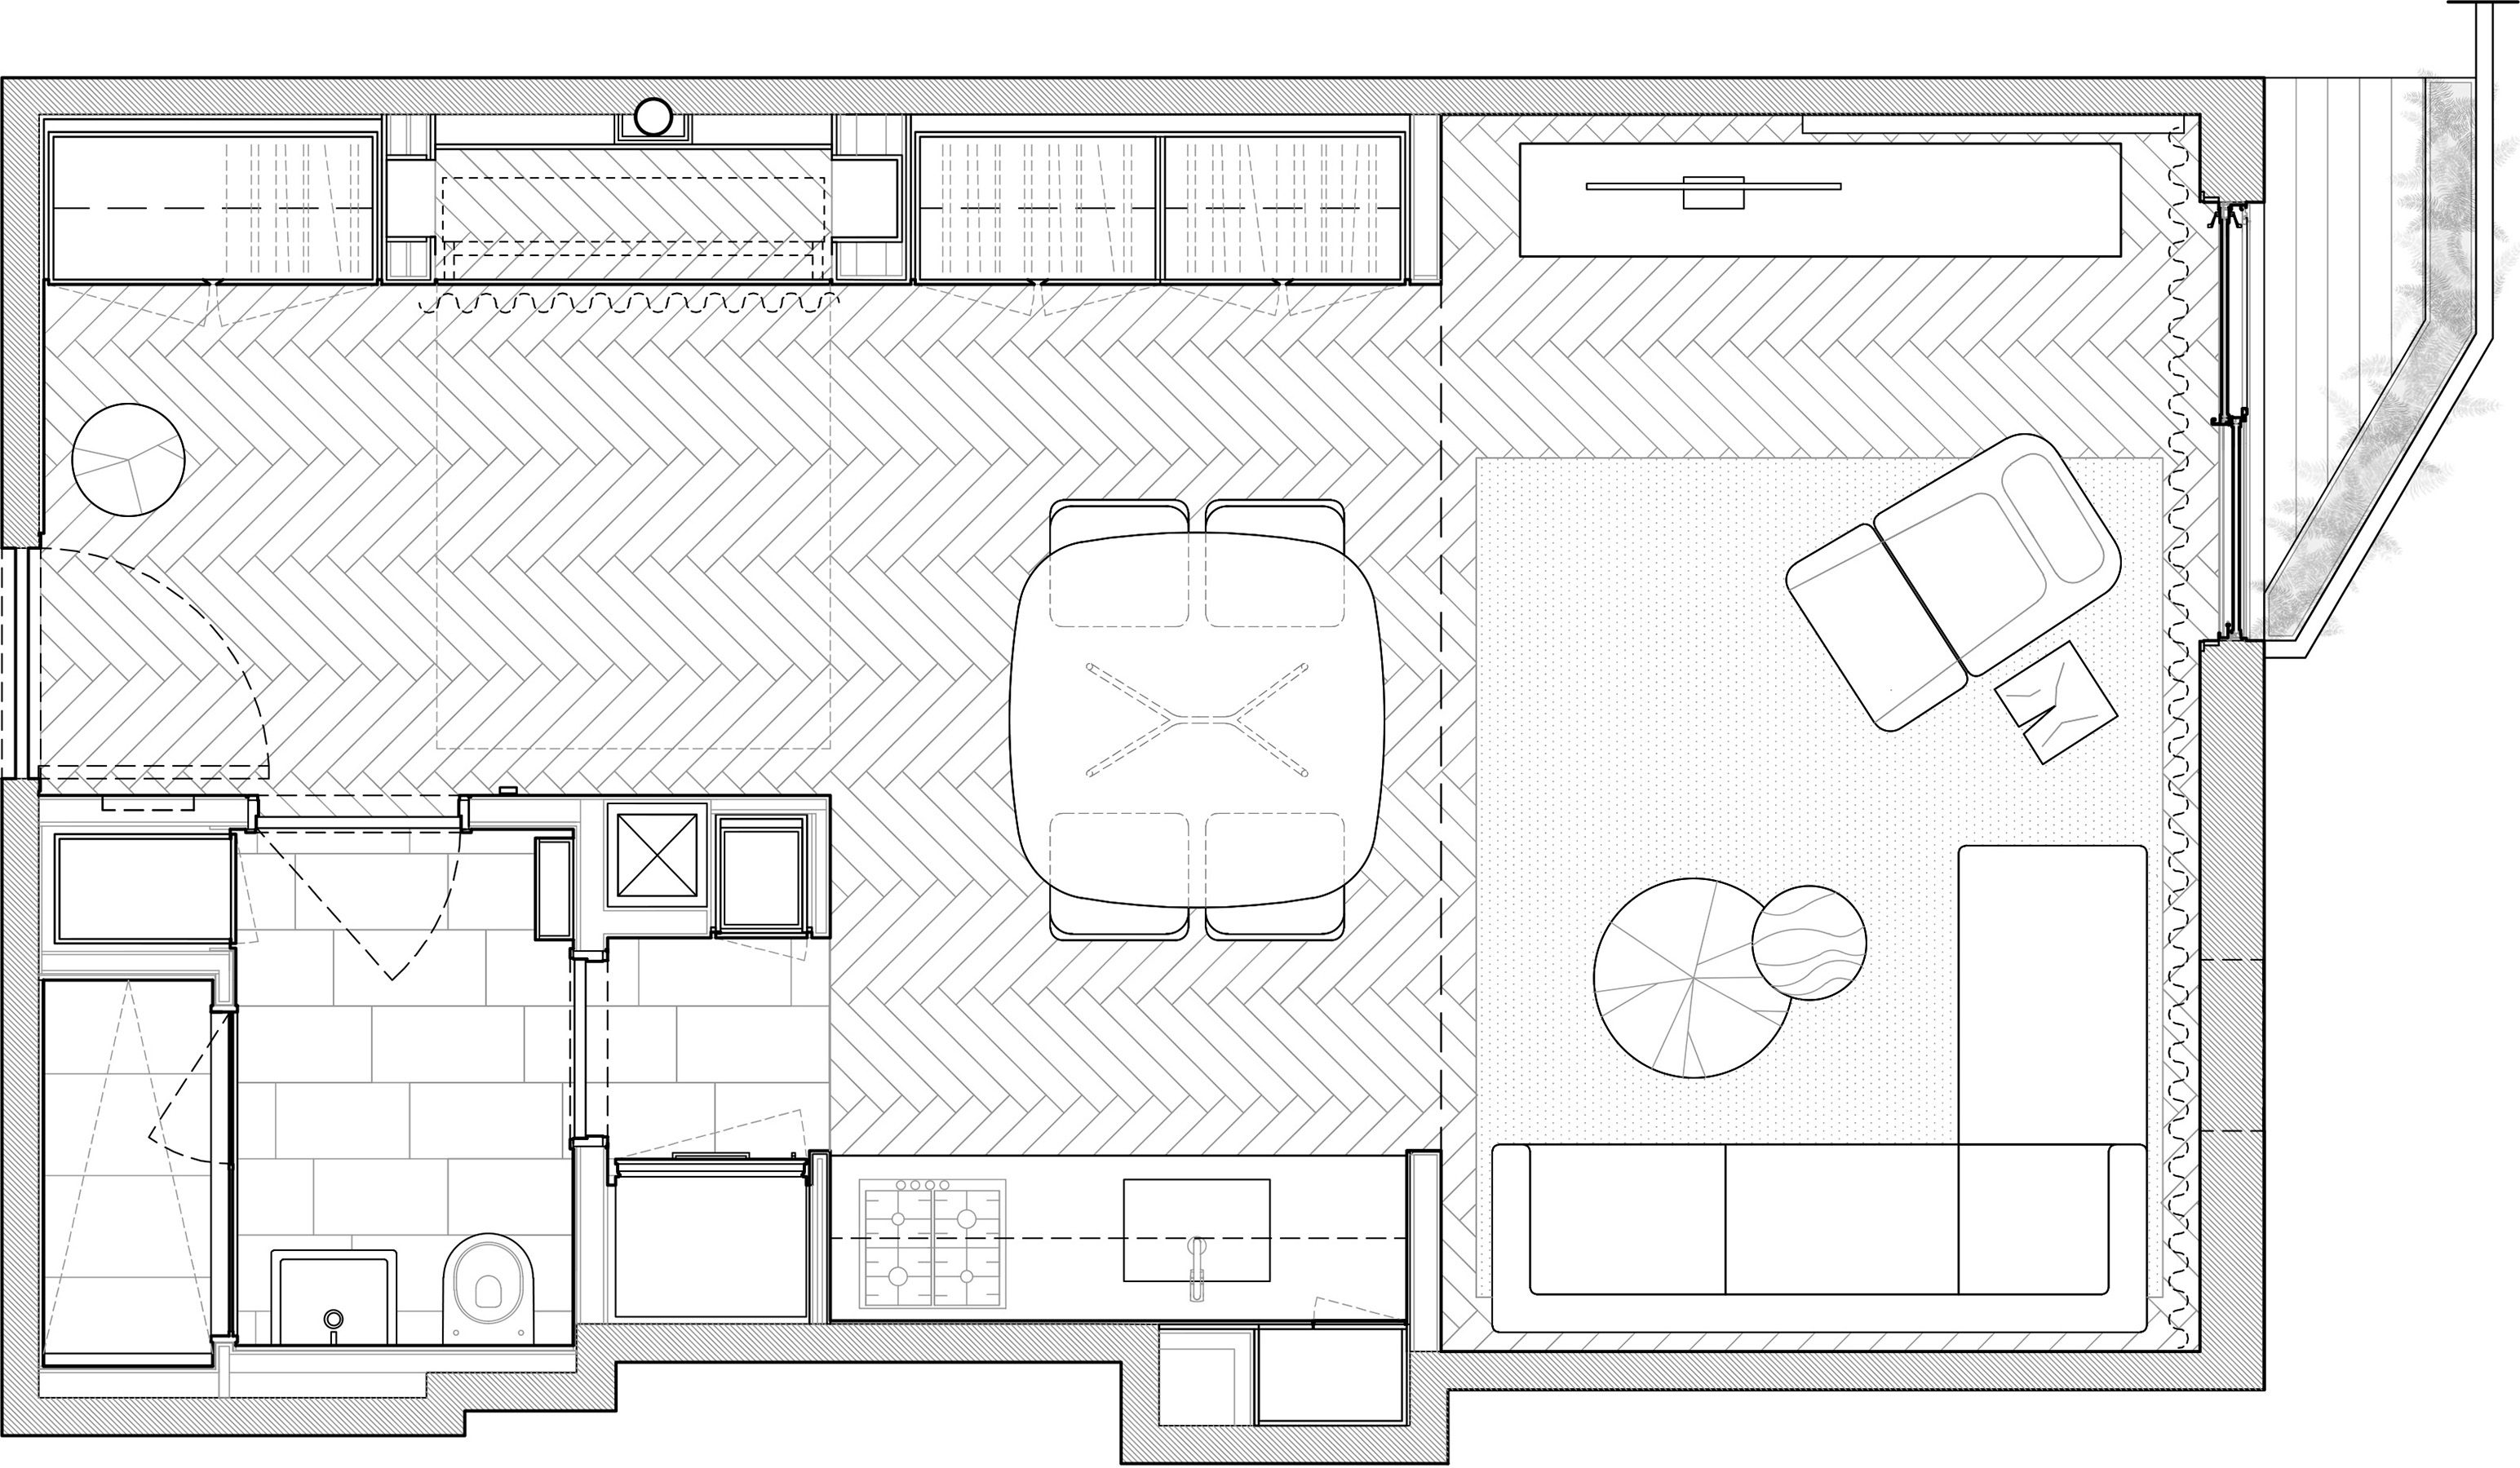 STADT Architecture, Gramercy Apartment, Floor Plan, STADT, STADT Architecture, New York City Architect, STADT